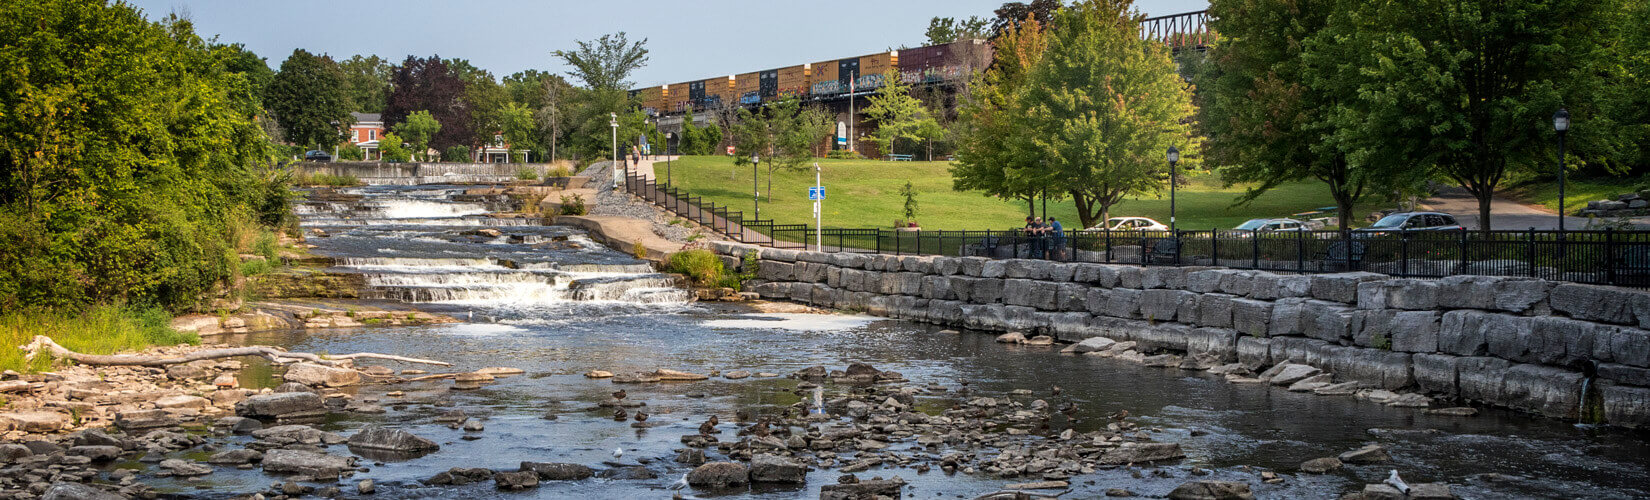 15+ Things to Do in Napanee for a Quaint Bay of Quinte Getaway :: I've Been Bit! Travel Blog